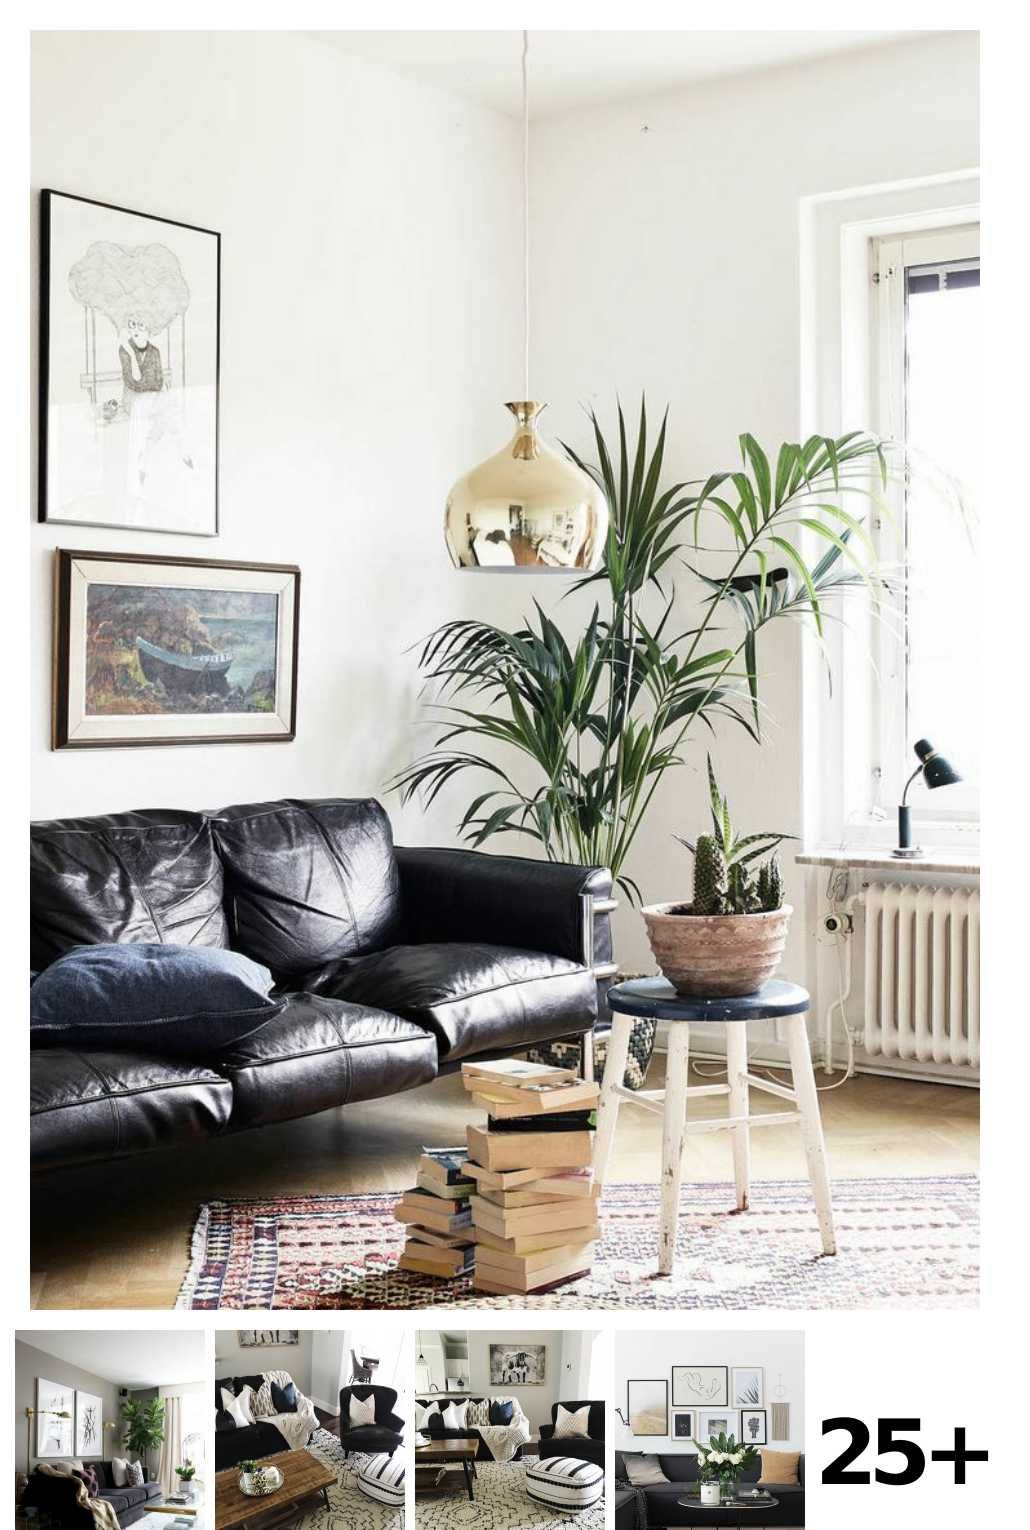 25 Living Room Black Couch Ideas In 2020 Home Living Room Home Decor Living Room Inspiration